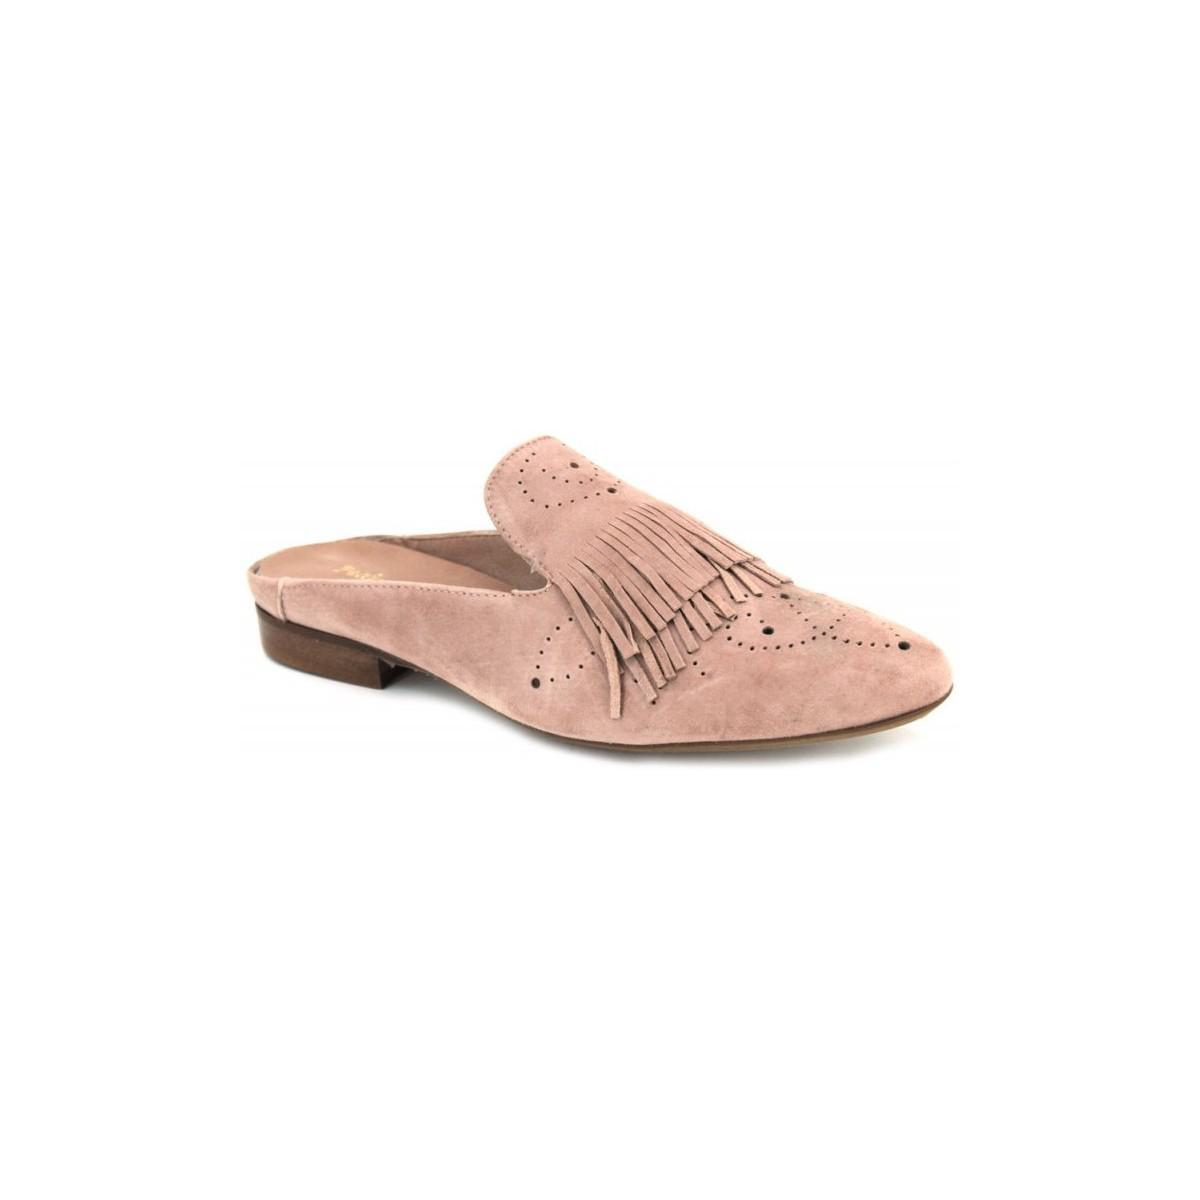 best loved 794a1 35b64 pedro-miralles-beige-19510-Womens-Court-Shoes-In-Beige.jpeg